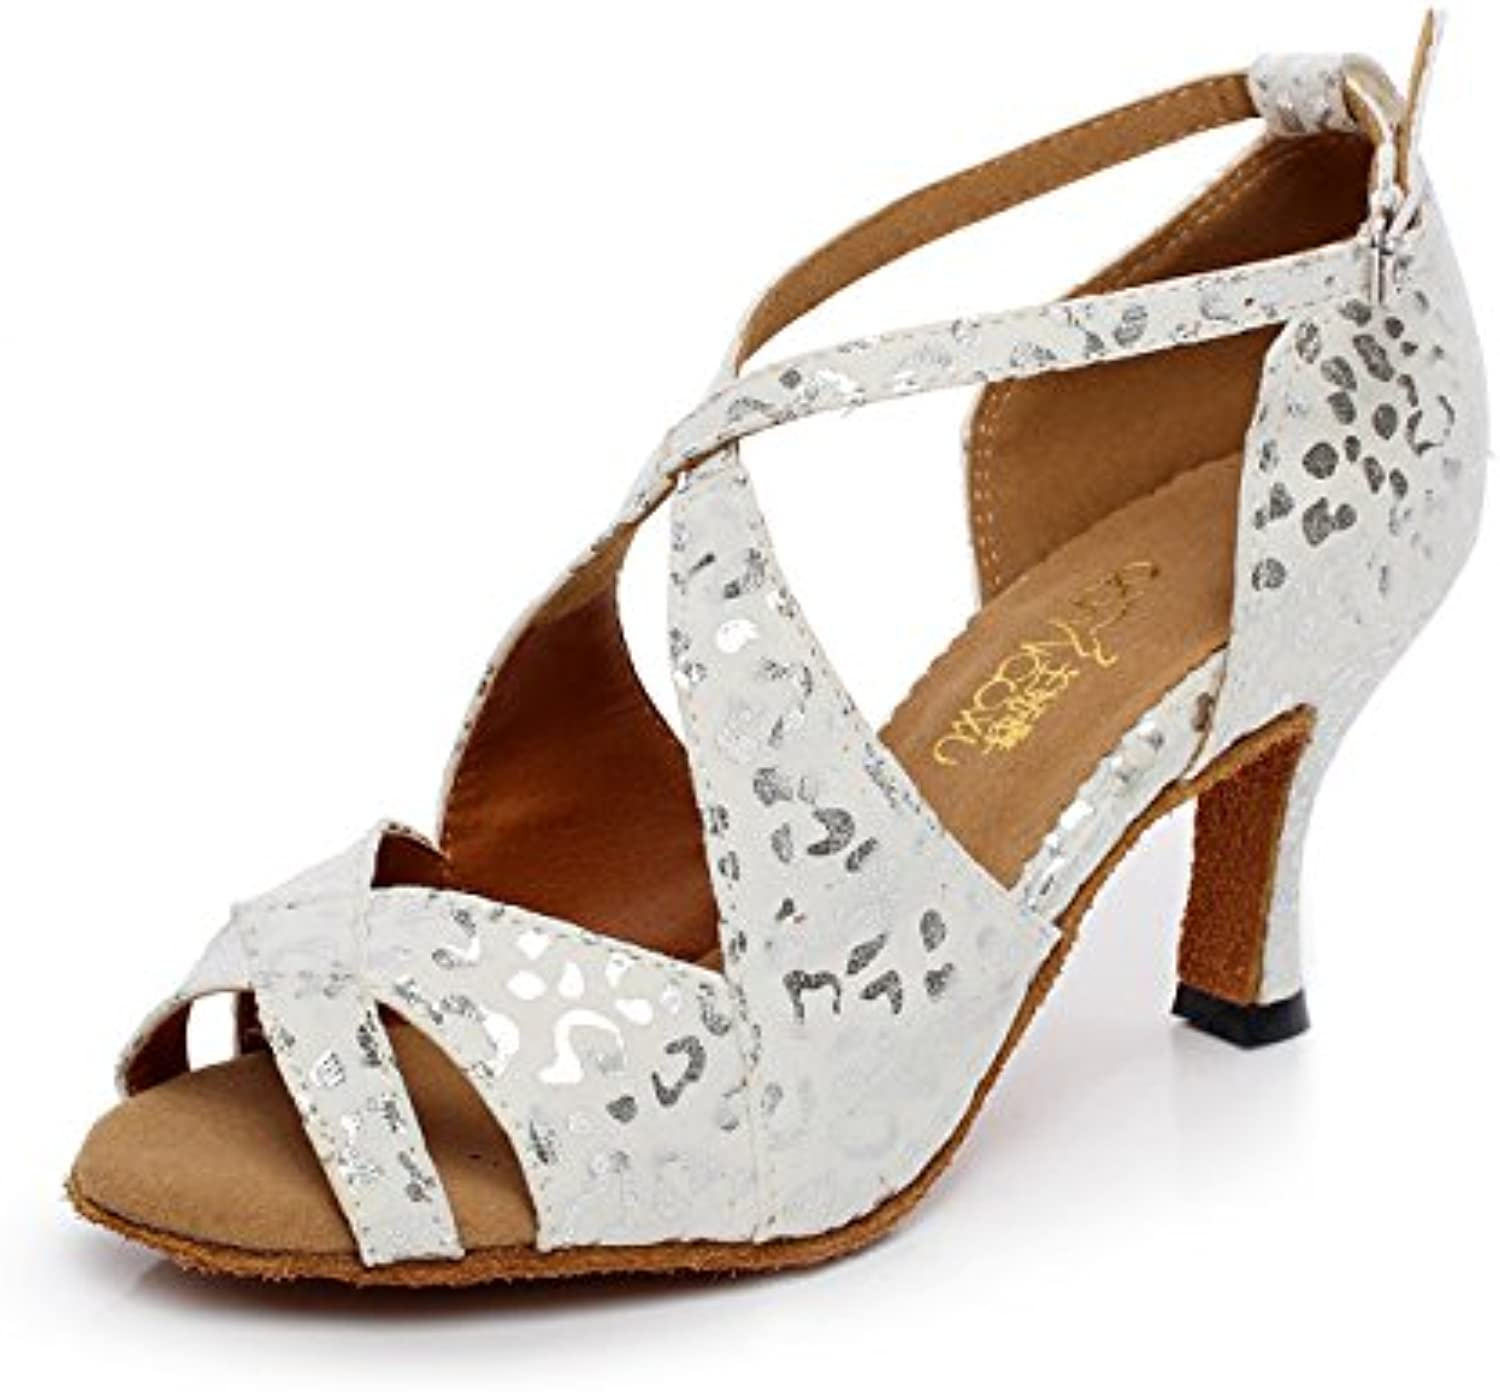 JSHOE Salsa/Tango/Tea/Samba/Modern/Jazz Shoes Sandalias Tacones Altos Para Mujer,White-heeled6cm-UK6/EU39/Our40